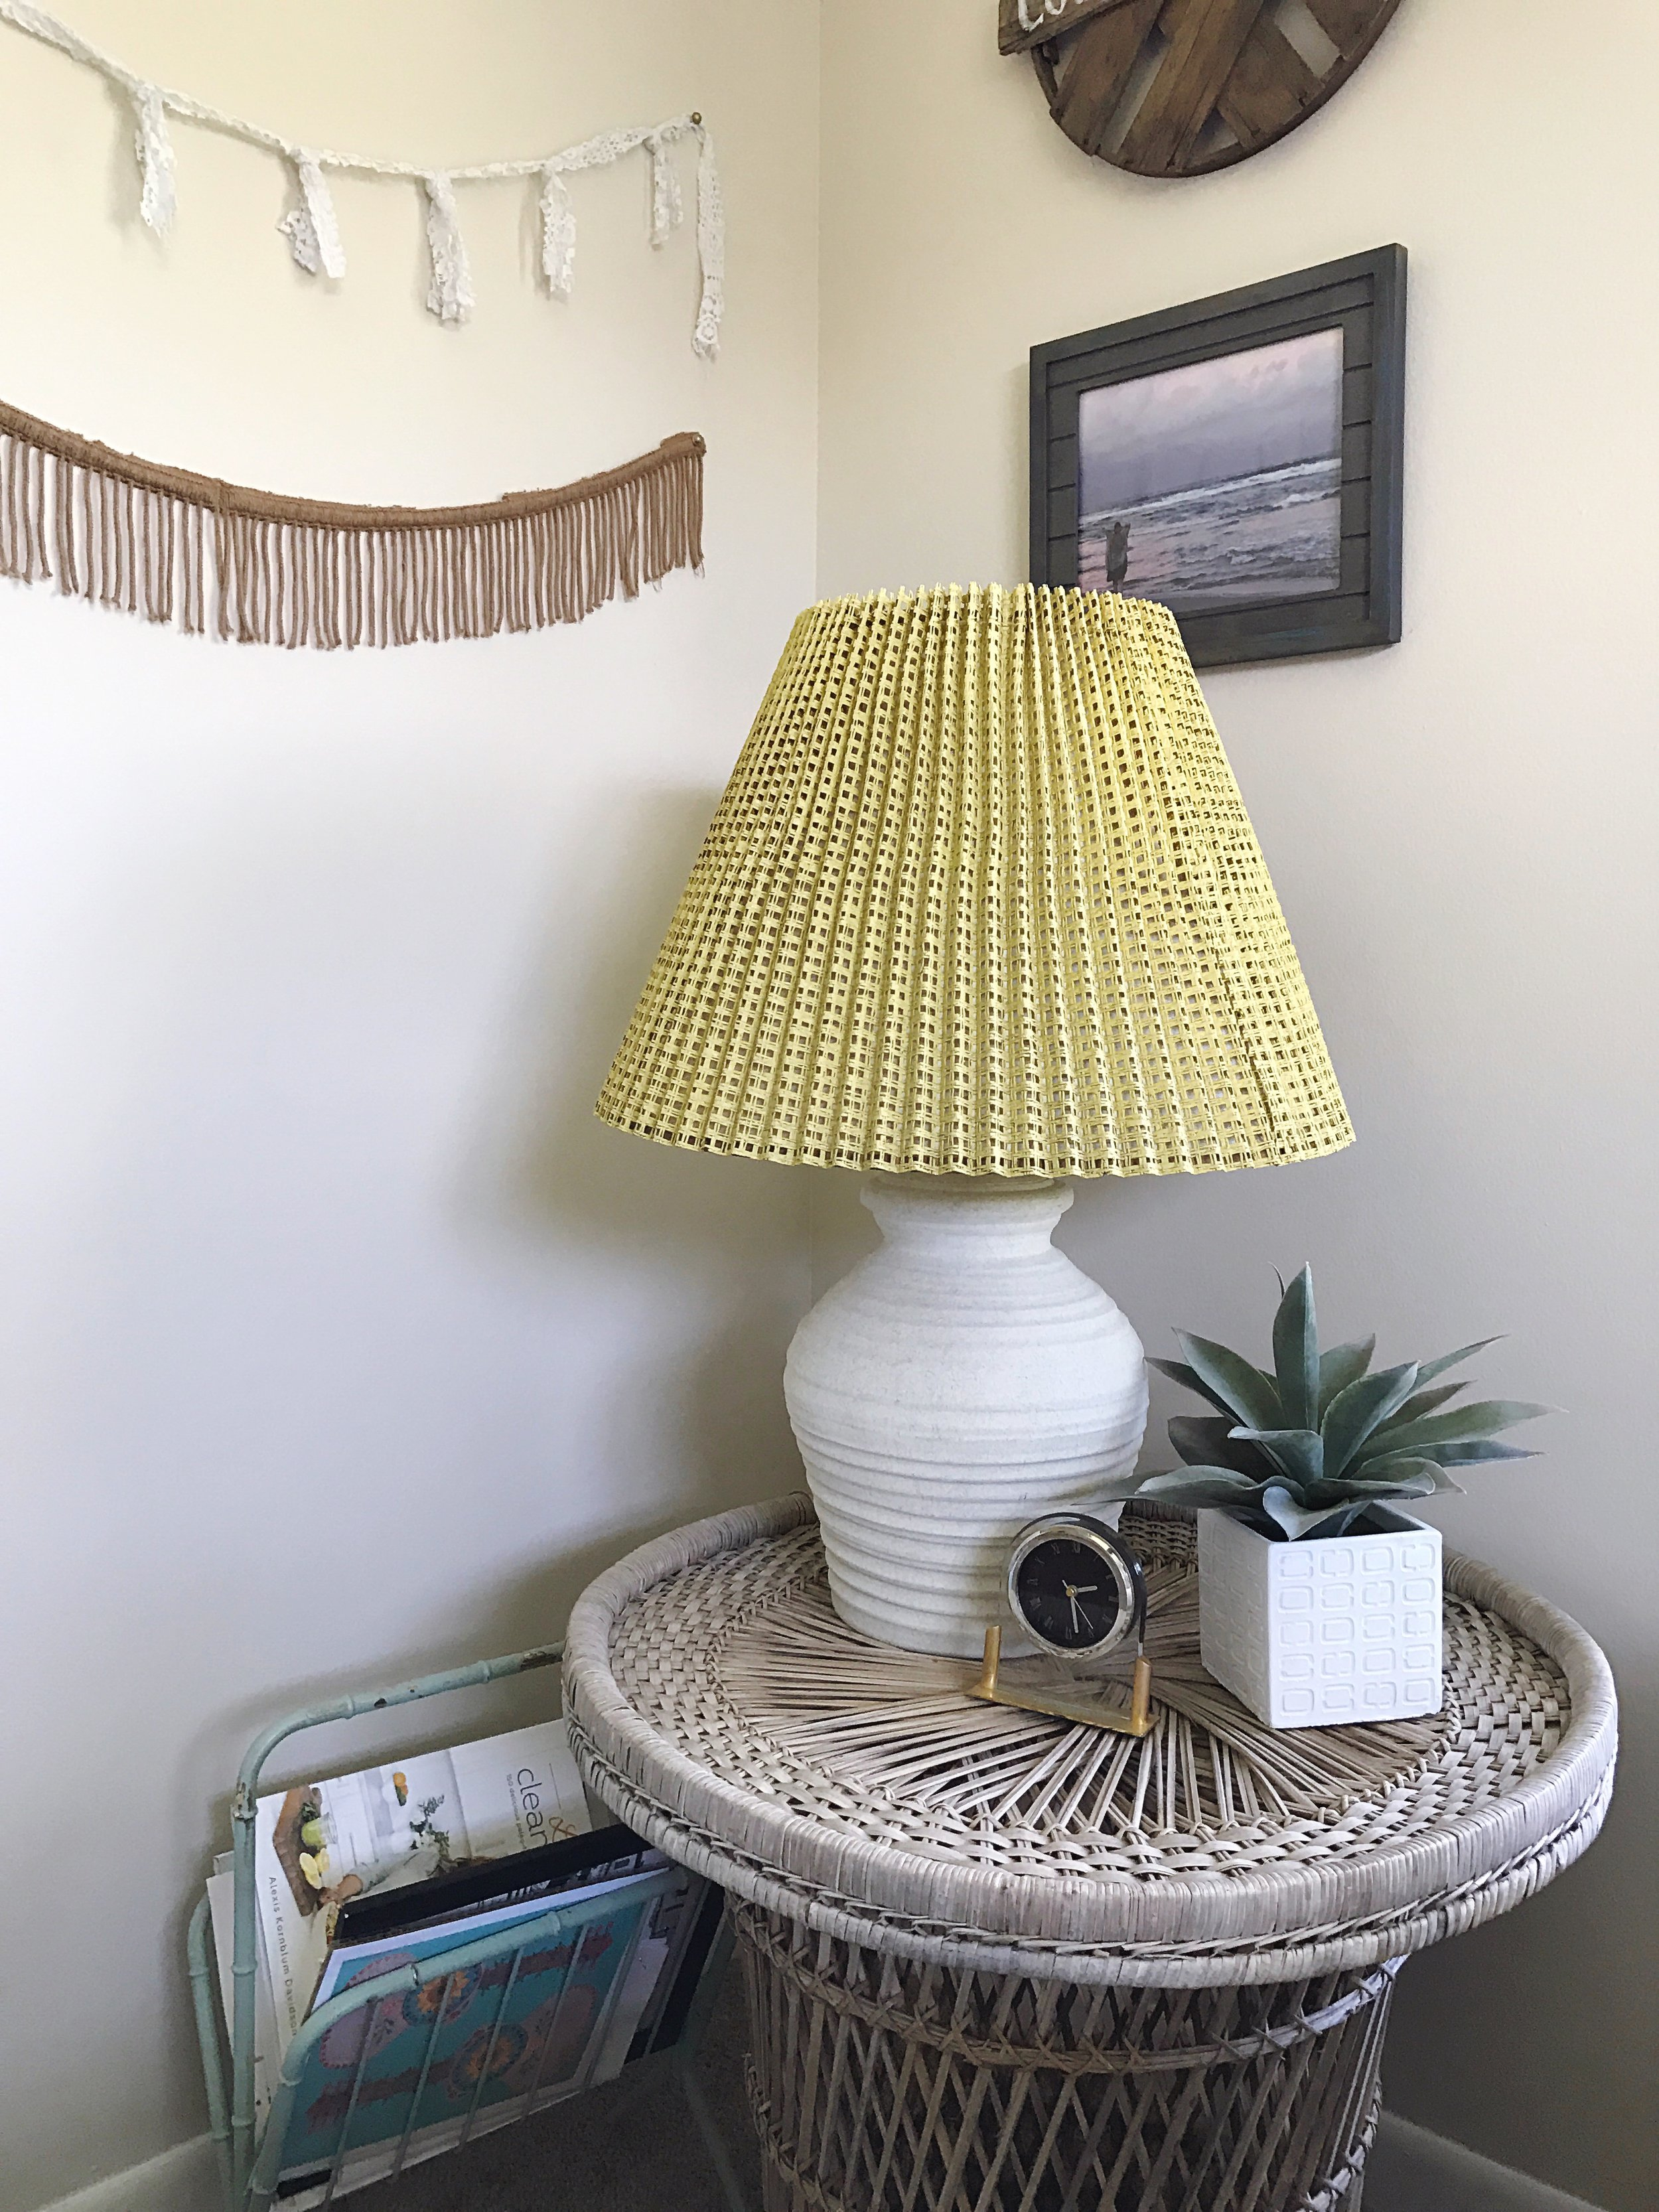 Most of the things in this picture were found at thrift stores. The only ones that weren't are the faux plant from Home Goods and the wall art. That lamp was a neat random find from a store that was having a 40% off lighting sale. I got him for $7. The side table was only $10.